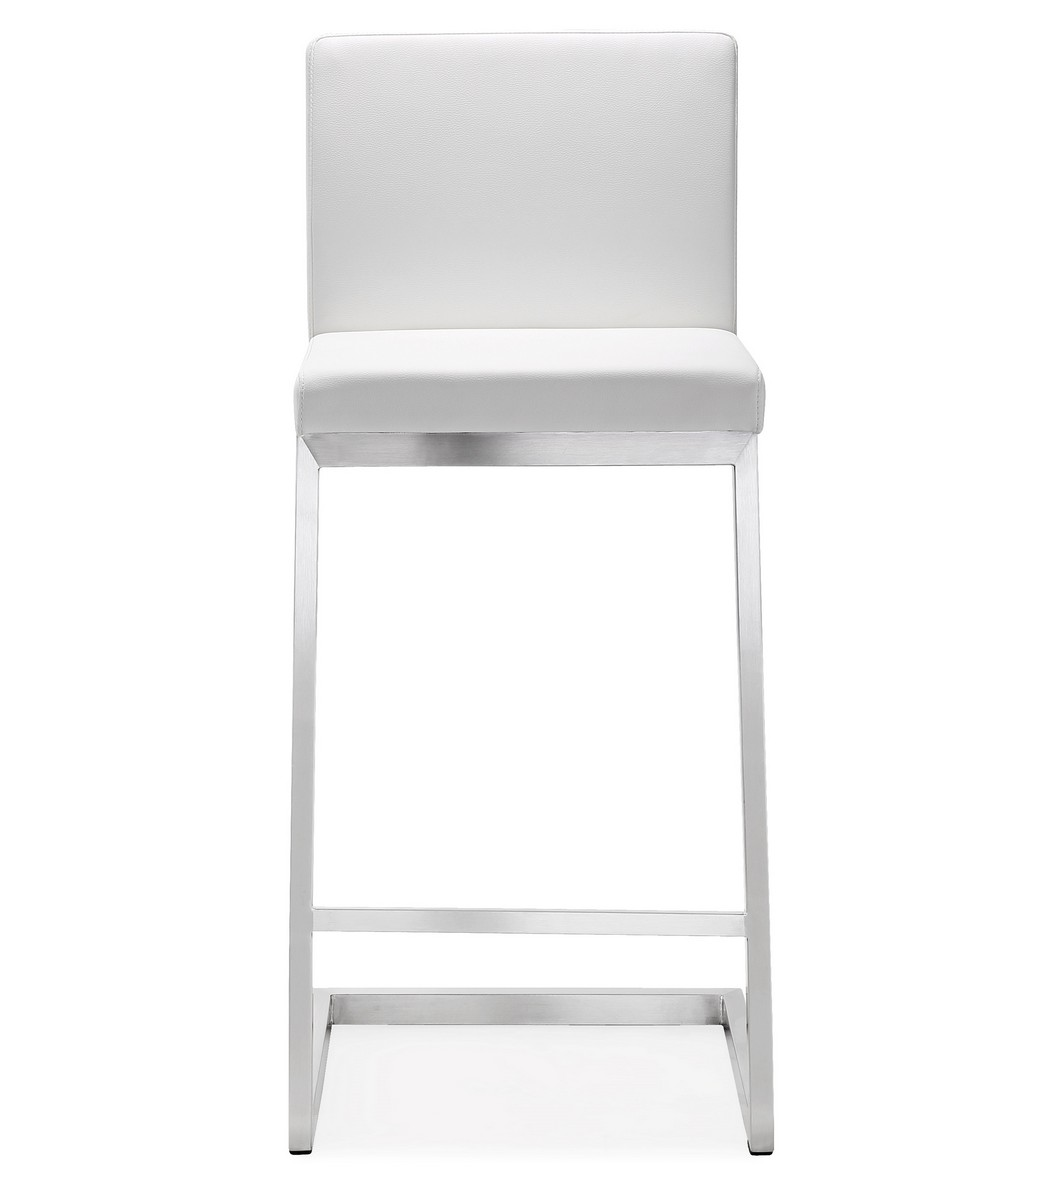 Tov Furniture Parma White Stainless Steel Counter Stool